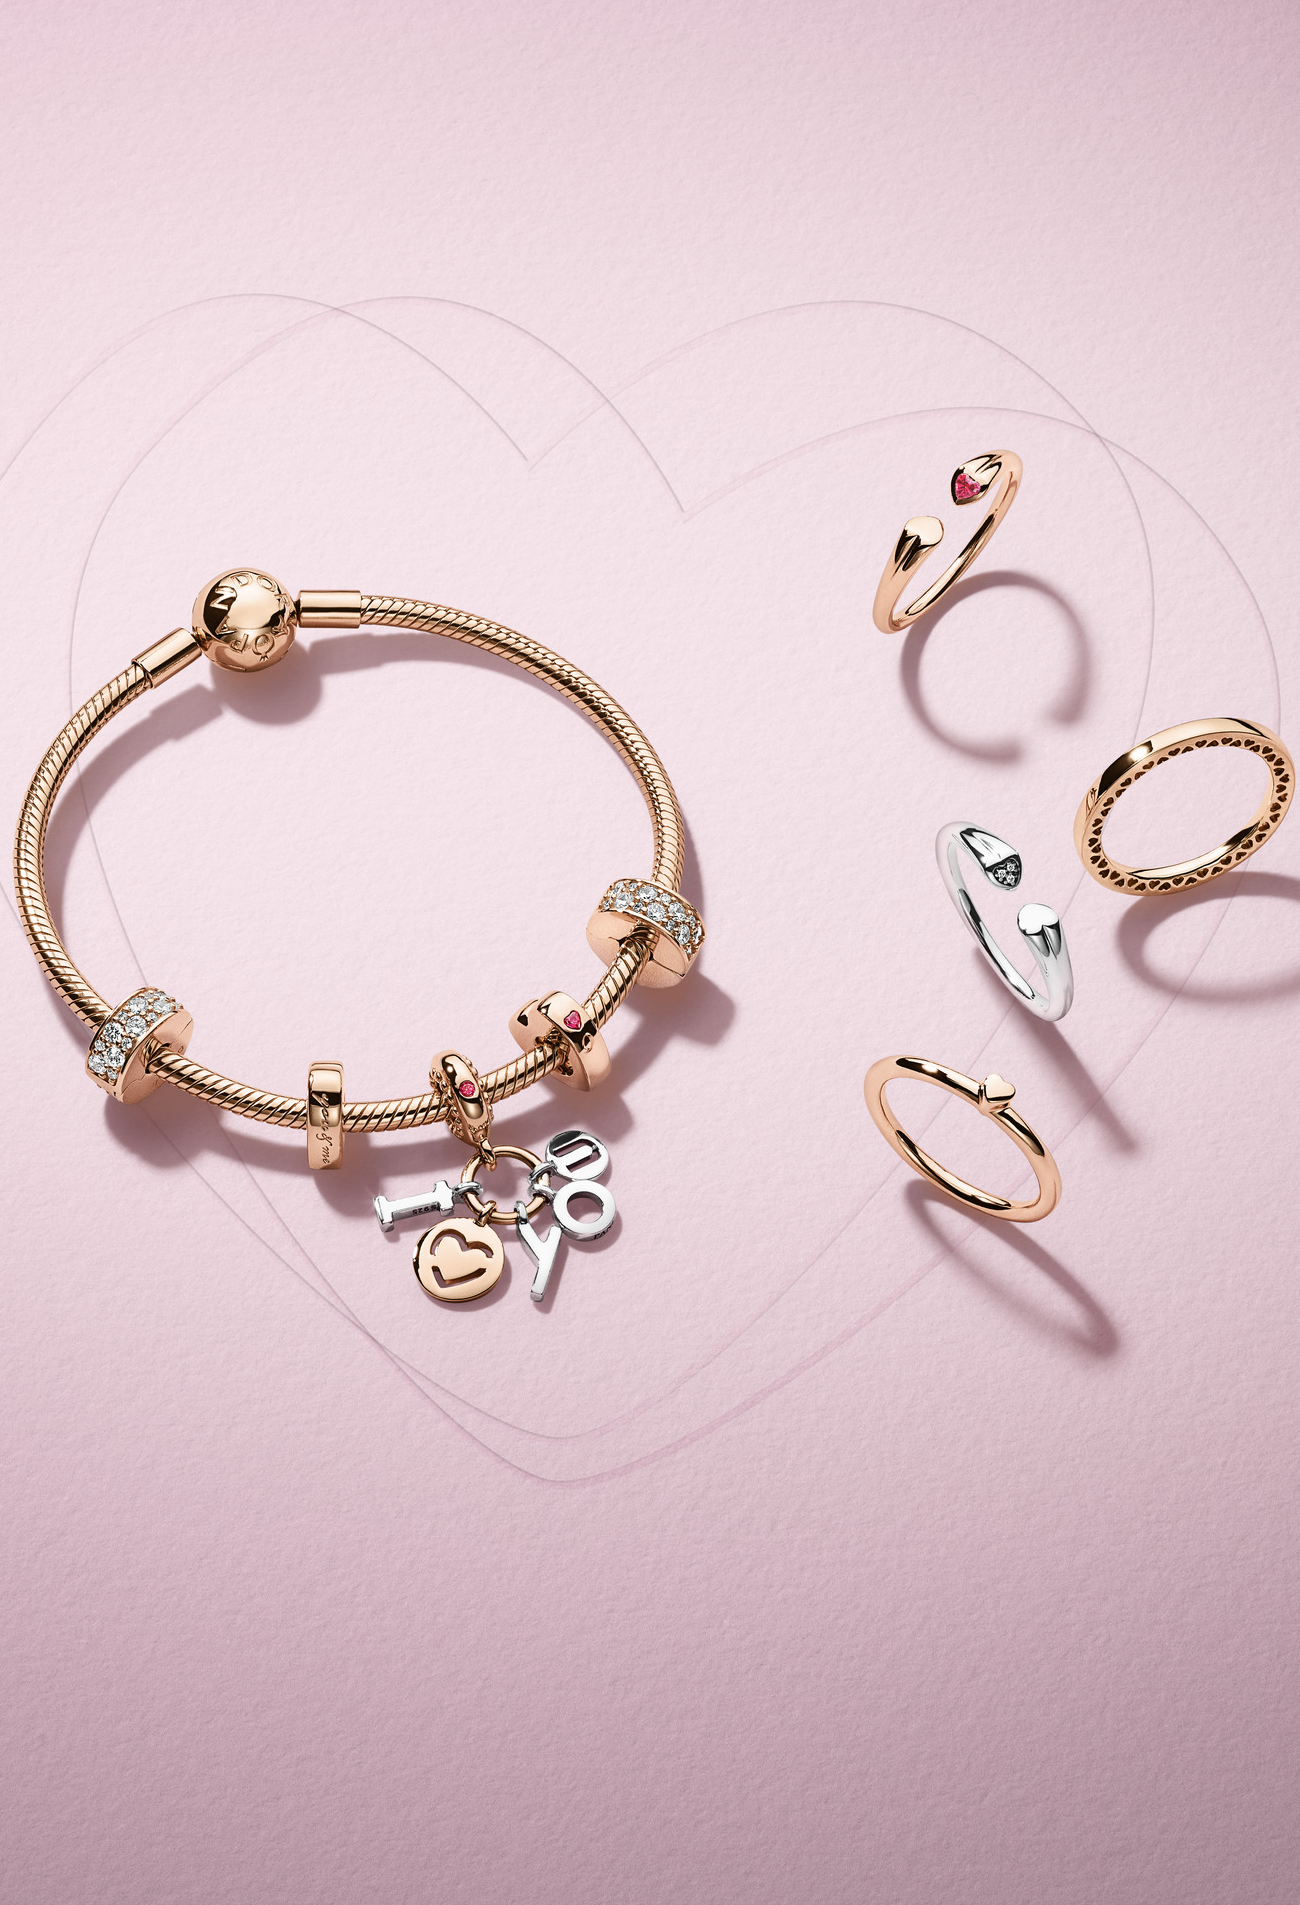 PANDORA Rose and sterling silver are perfect for creating an eye-catching look. Adornes with loving shimmering PANDORA charms and rings this look is ready to greet Valentine's Day in style.